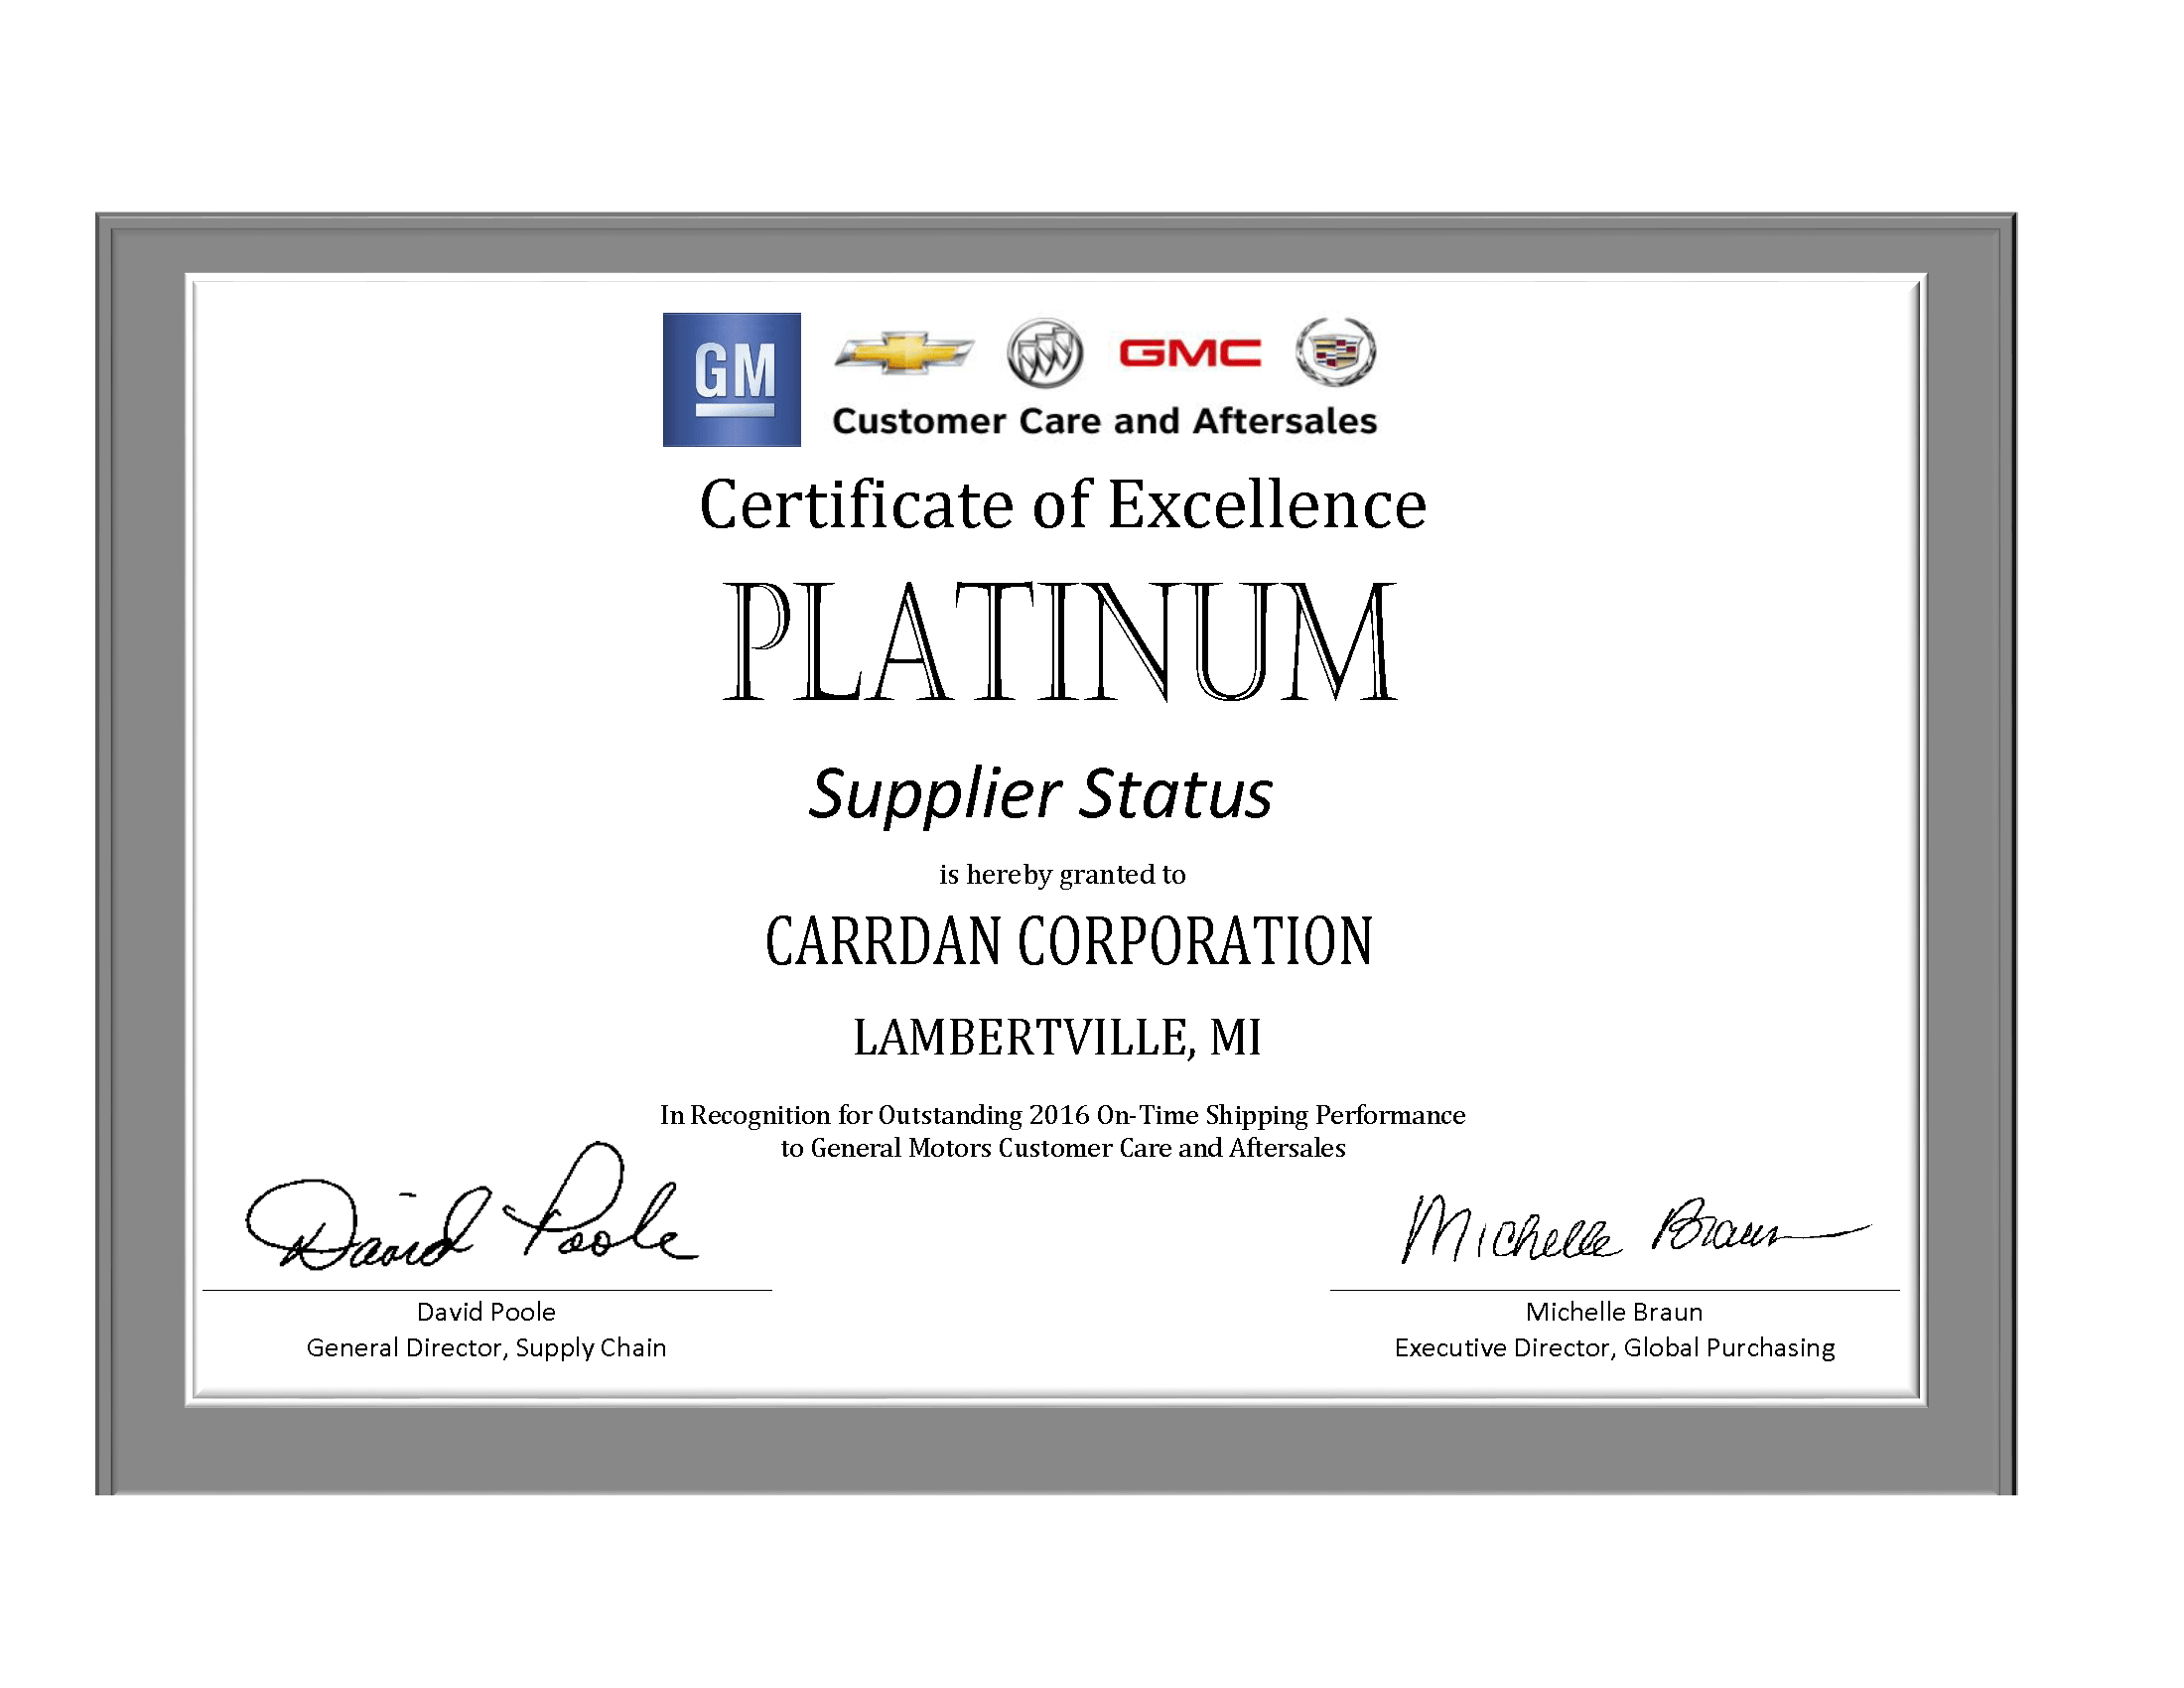 2016 GM Platinum Supplier Certificate